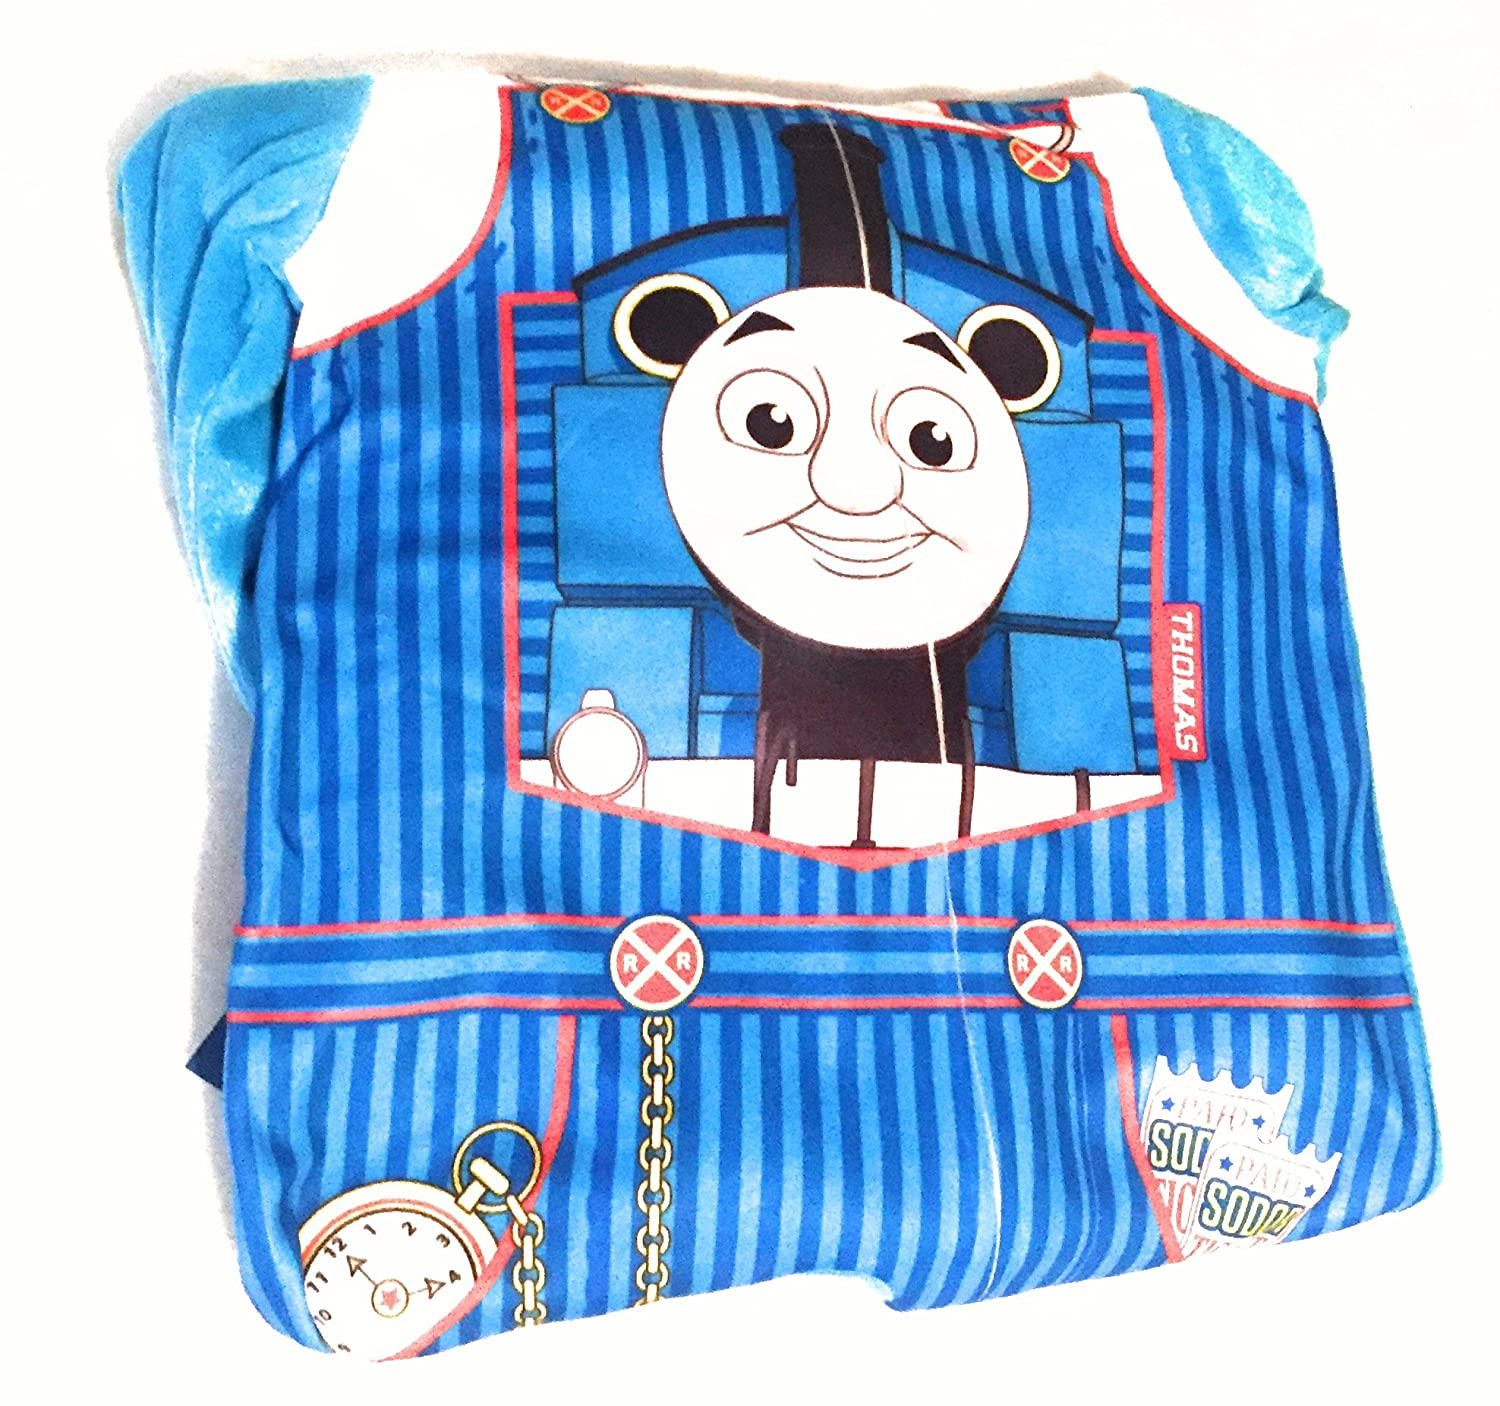 【海外輸入】 Thomas B076FLDVJV & SLEEPWEAR Friends SLEEPWEAR 2T ボーイズ 2T B076FLDVJV, トヨナカチョウ:fc0debb1 --- agiven.com